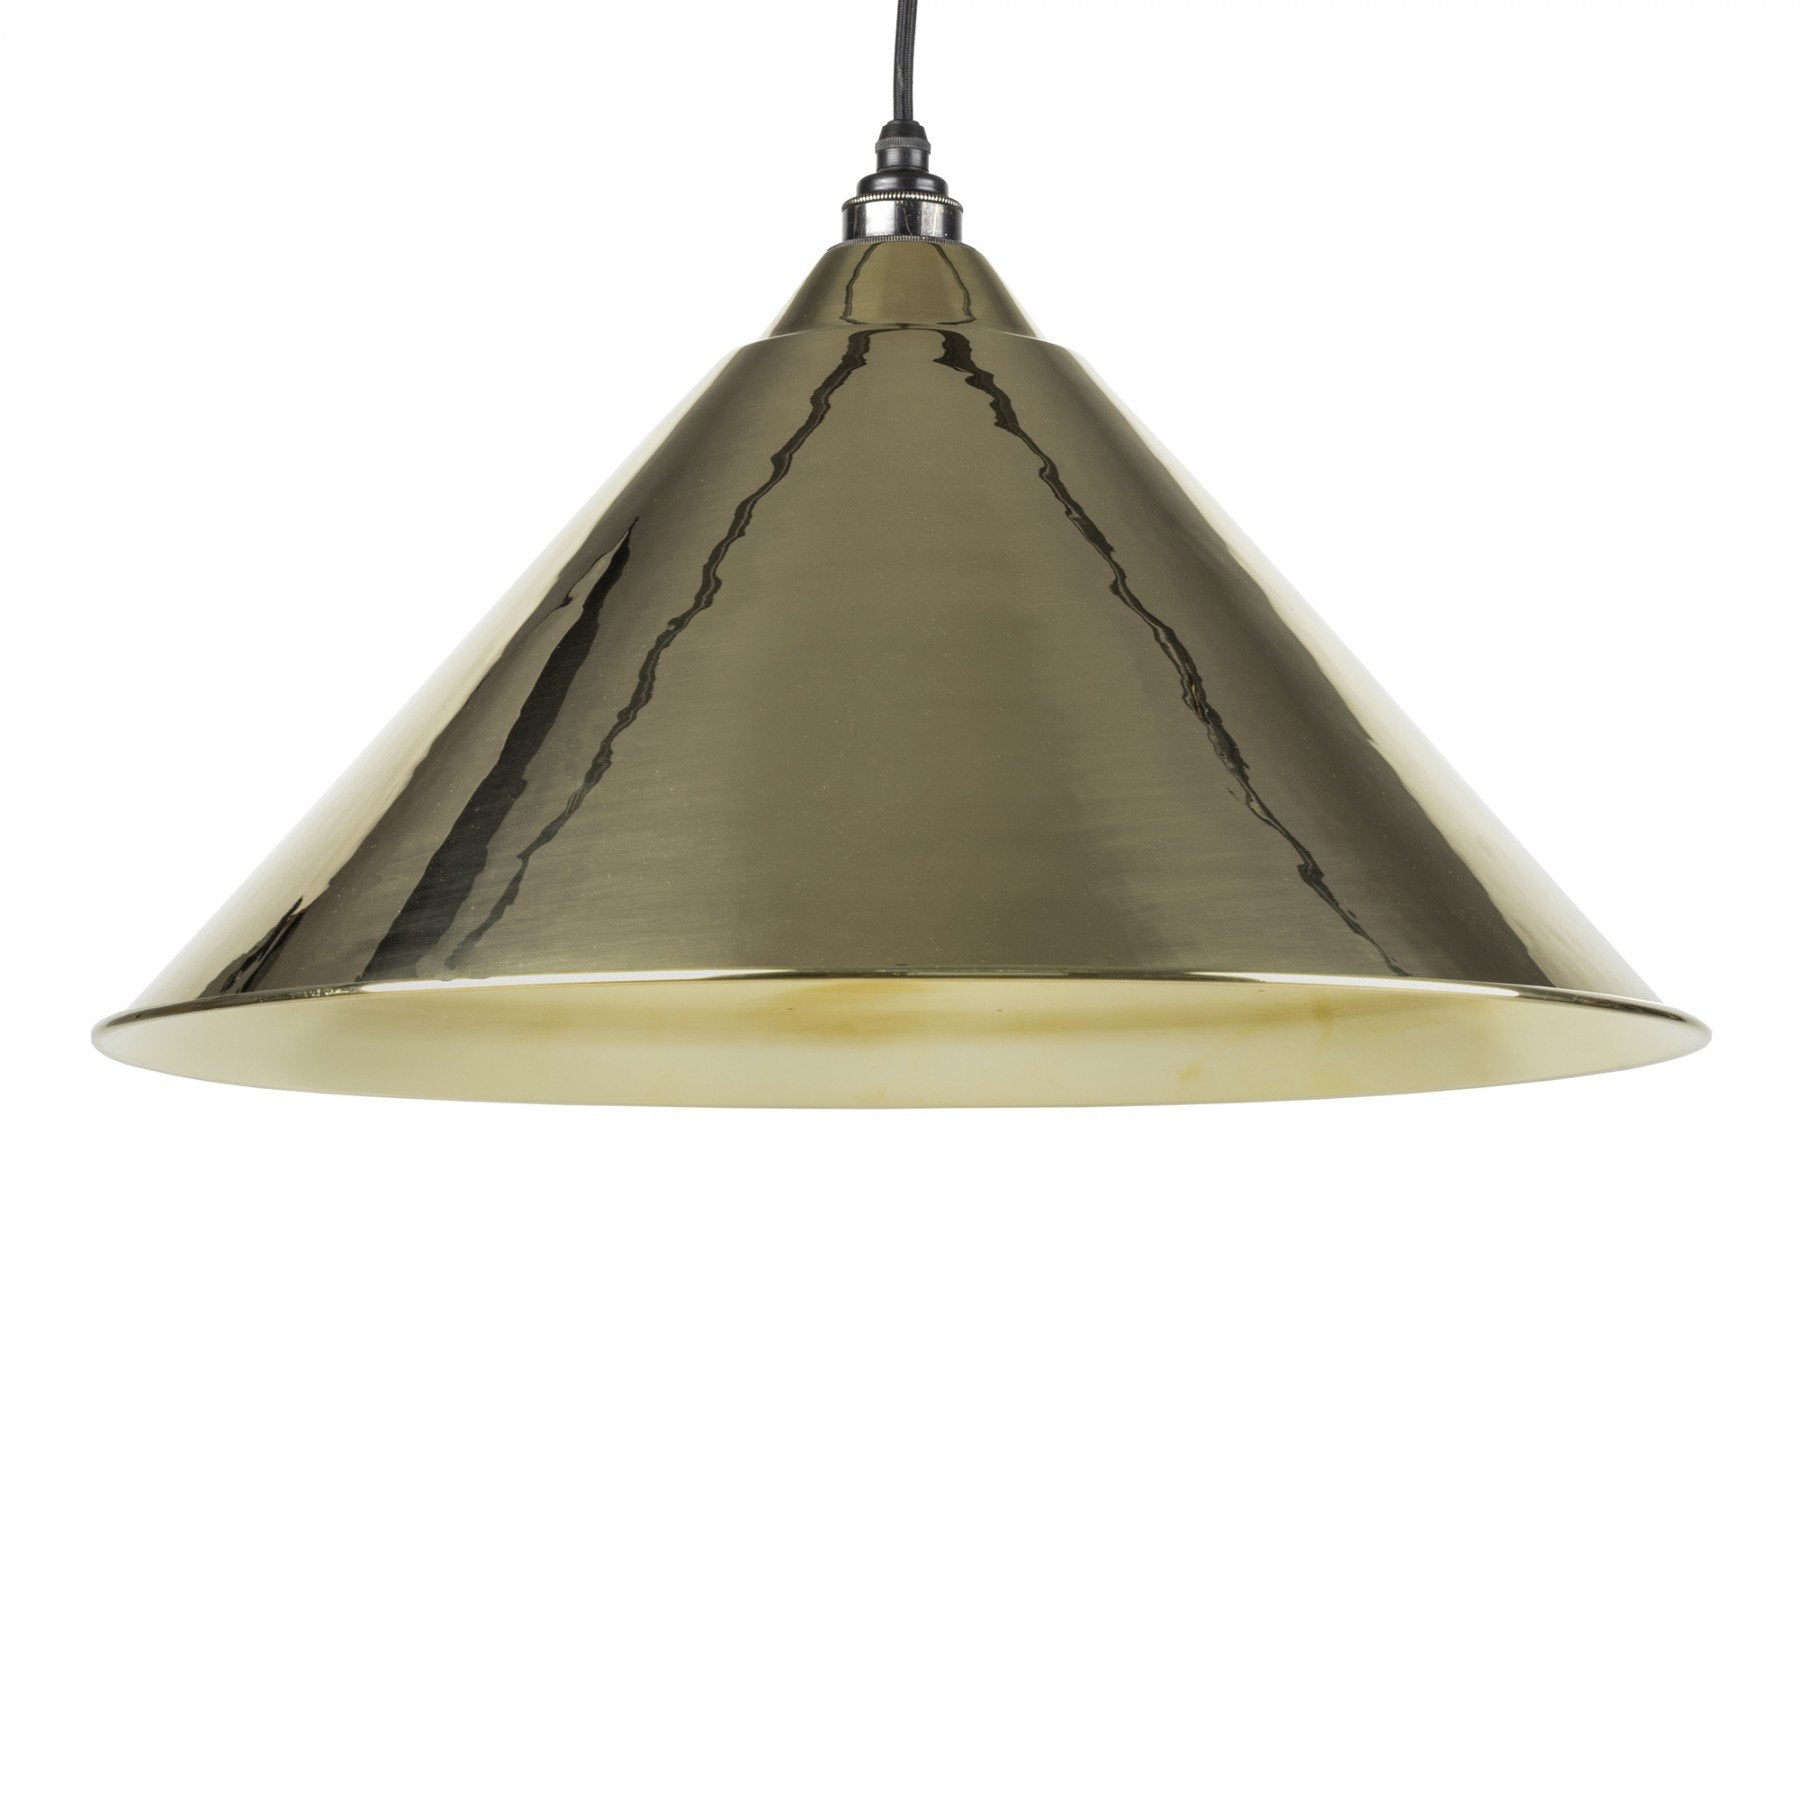 From The Anvil Smooth Brass Interior Hockley Pendant - No.42 Interiors